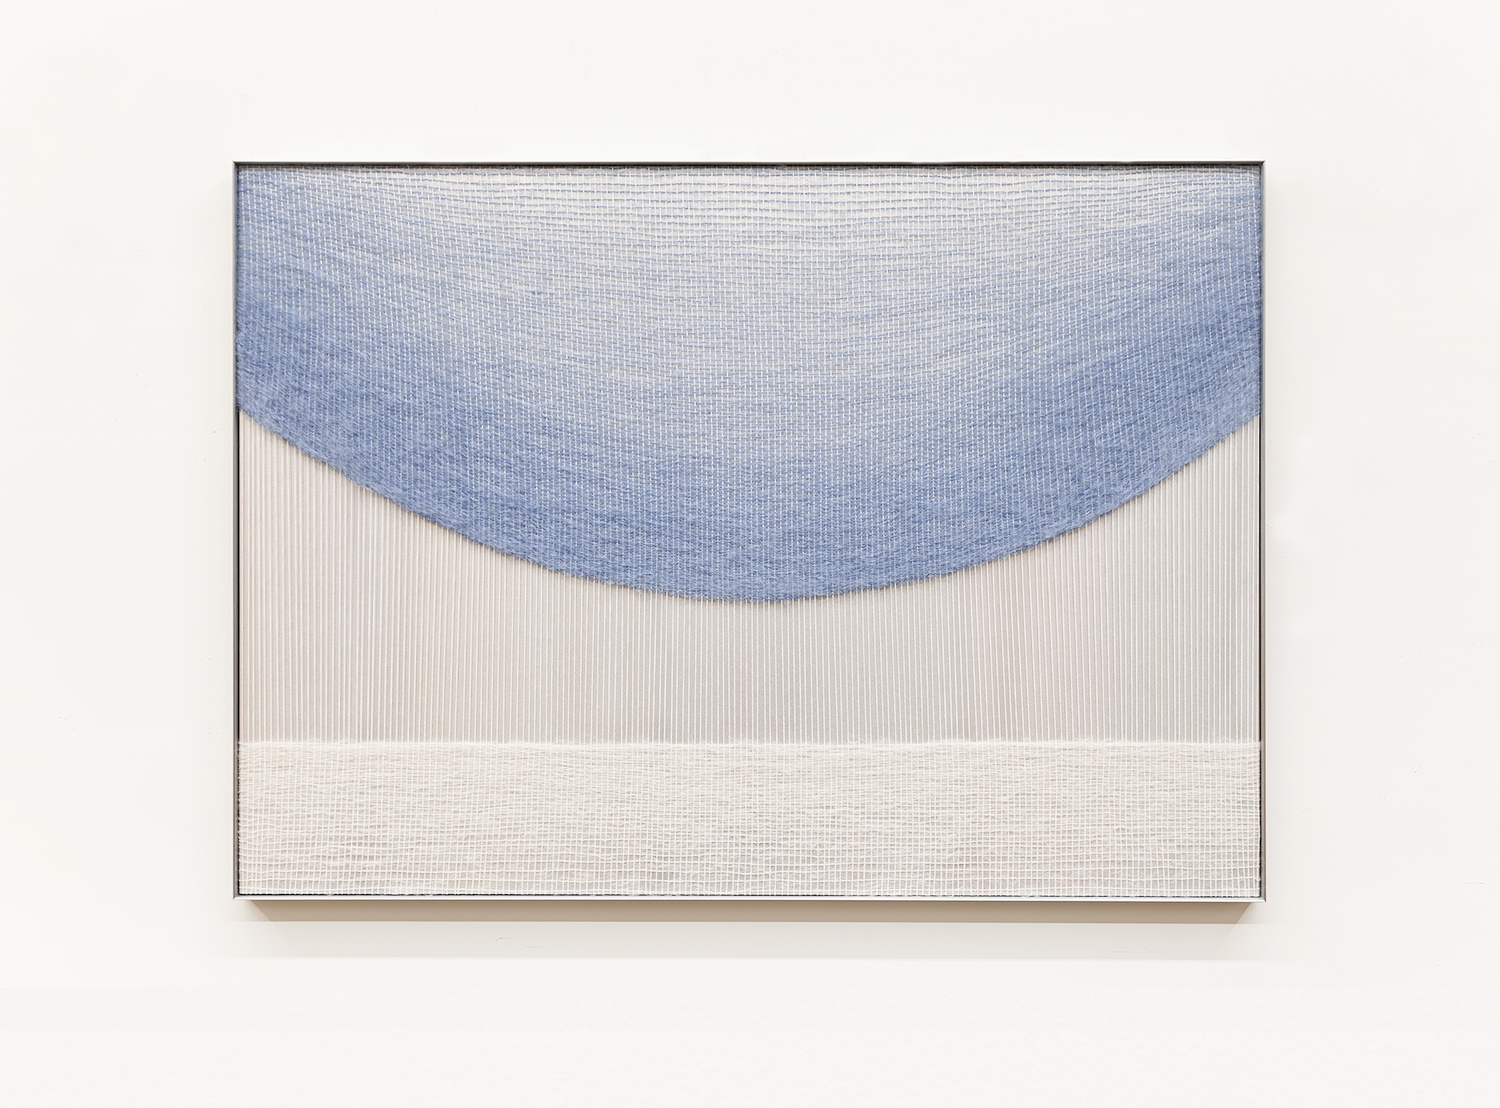 MimiJung_Pale_Blue_Ellipse_and_White_Rectangle_1.jpg